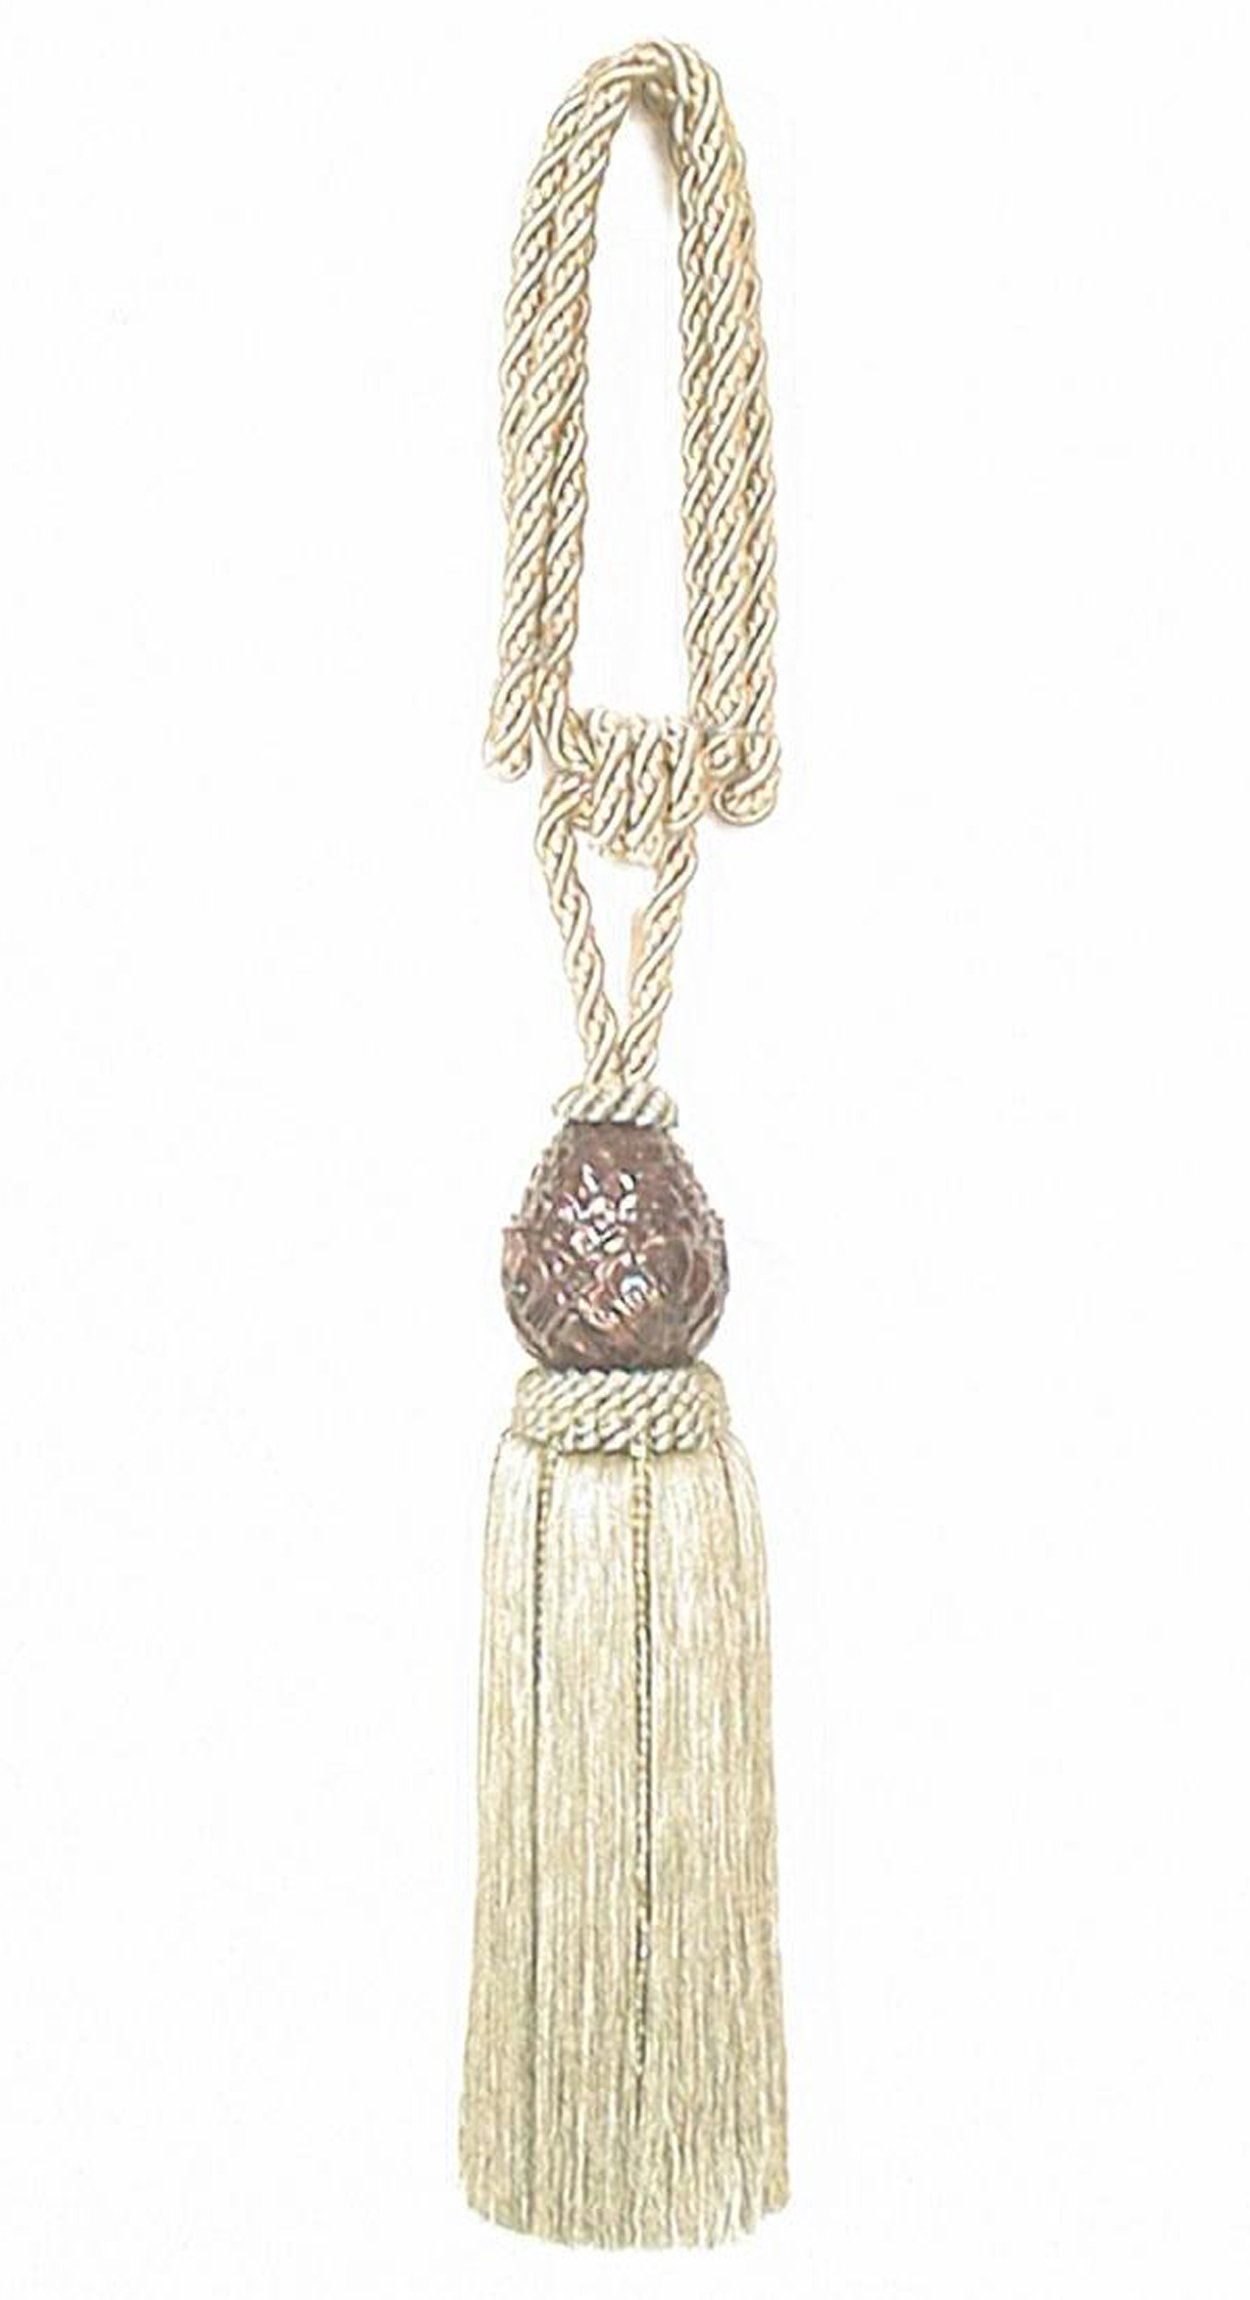 India House 76408 Pineapple Tieback with 12-Inch Single Tassel and 36-Inch Cord, Sage